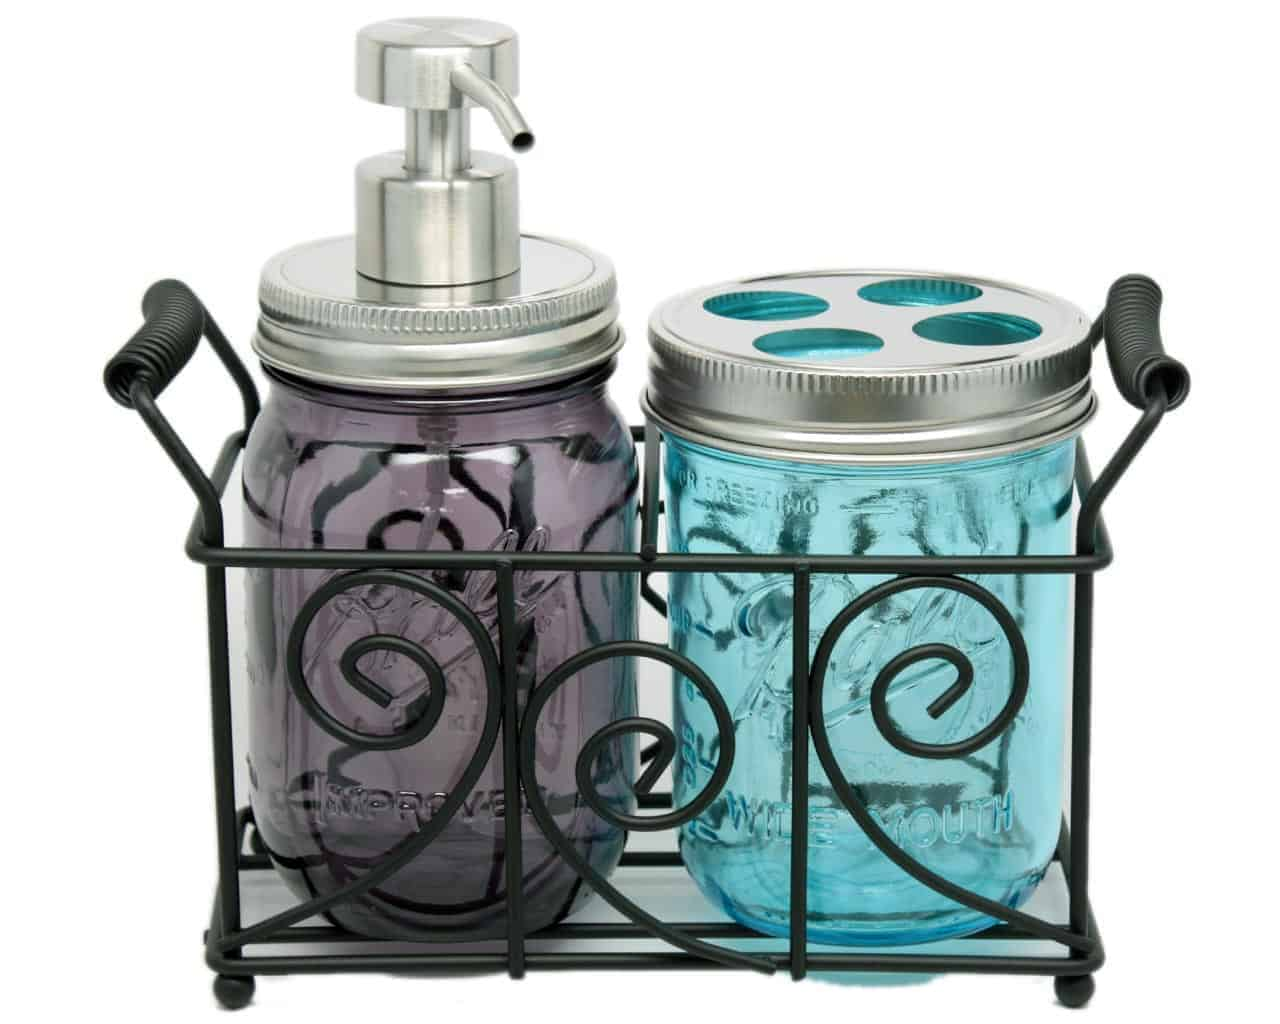 Swirl Black Metal Caddy for 2 or 3 Pint Mason Jars